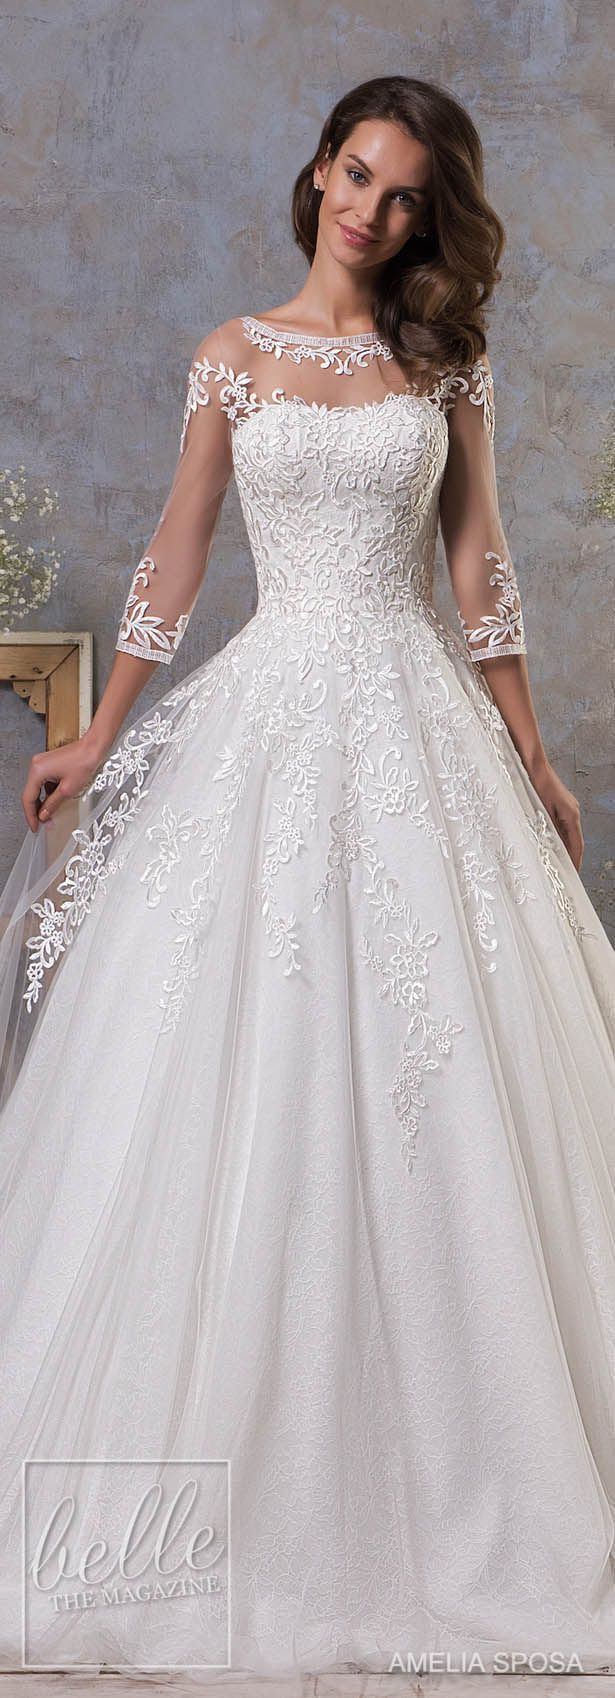 Amelia Sposa Fall 2018 Wedding Dresses #weddingdresses